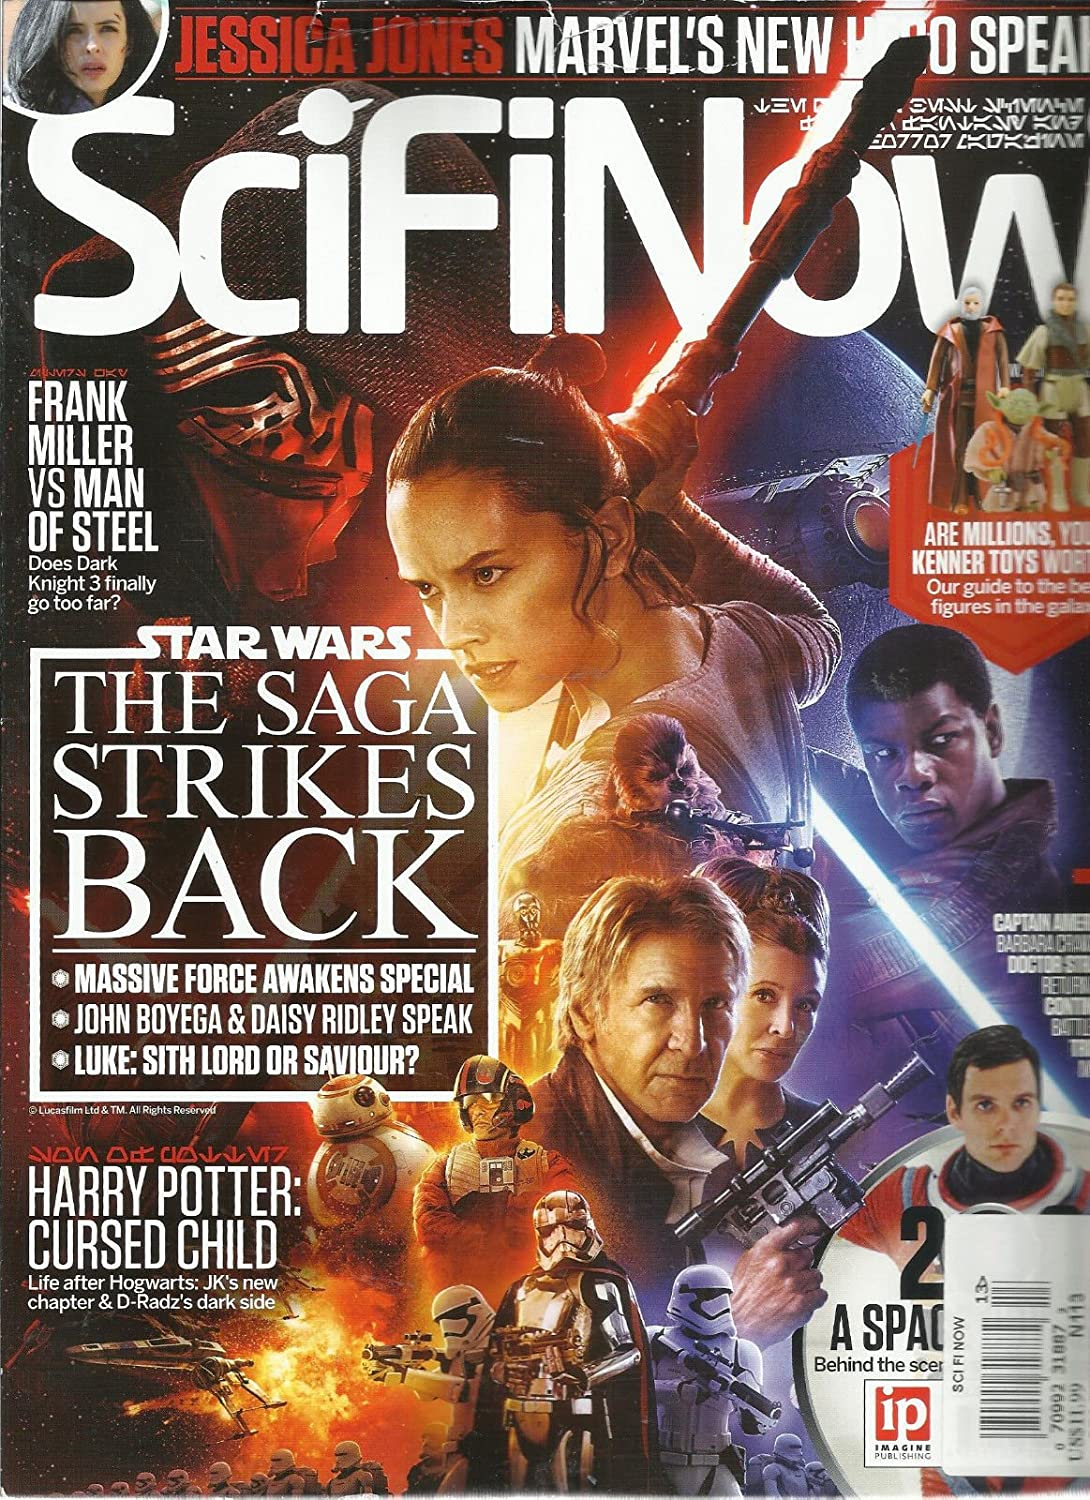 SciFi Now The Force Awakens Issue